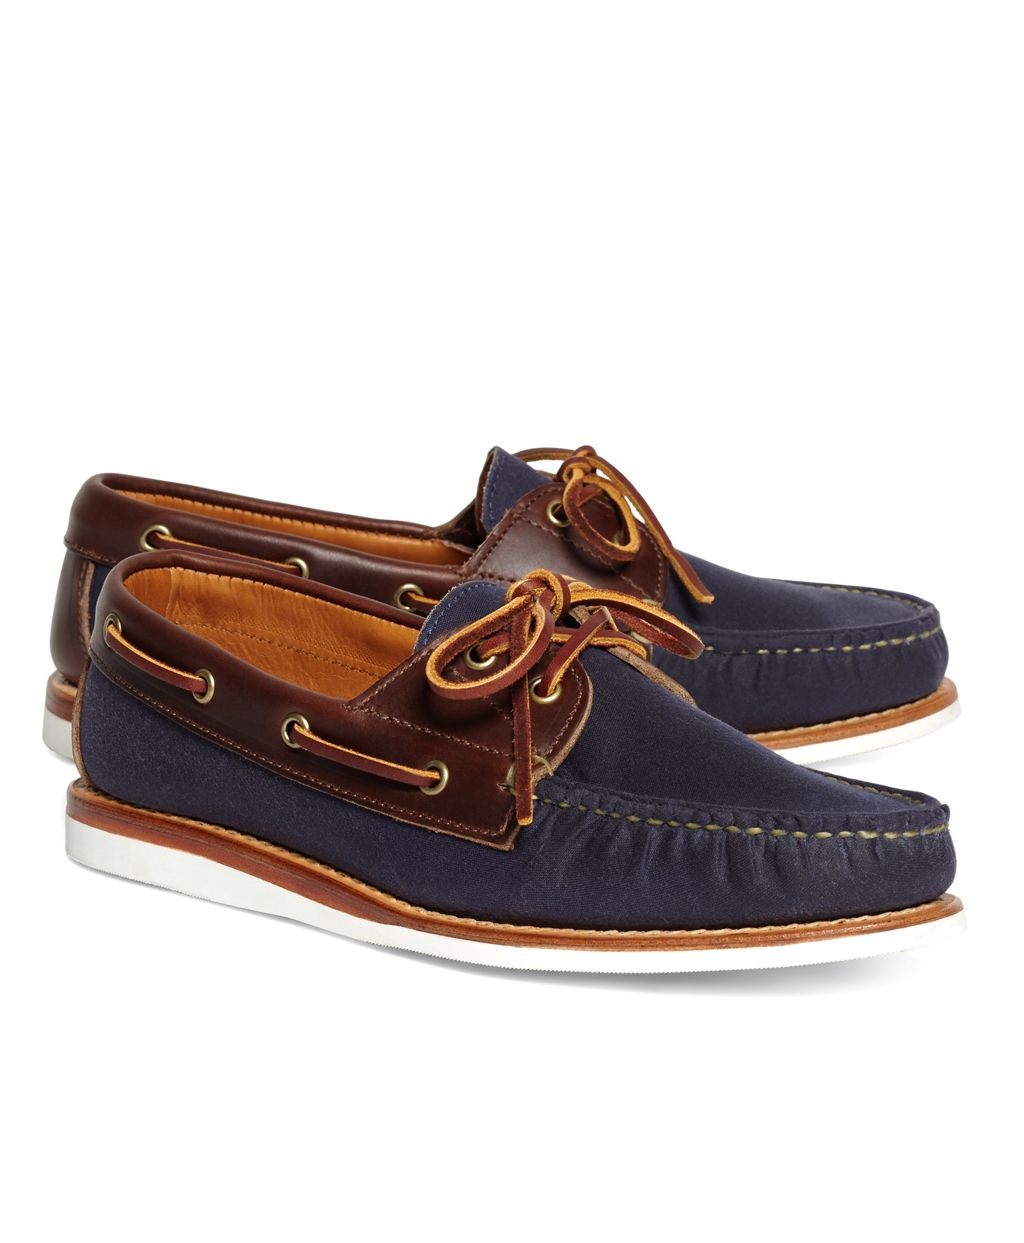 2b8590e94b Men s Rancourt and Co. Waxed Canvas Boat Shoes